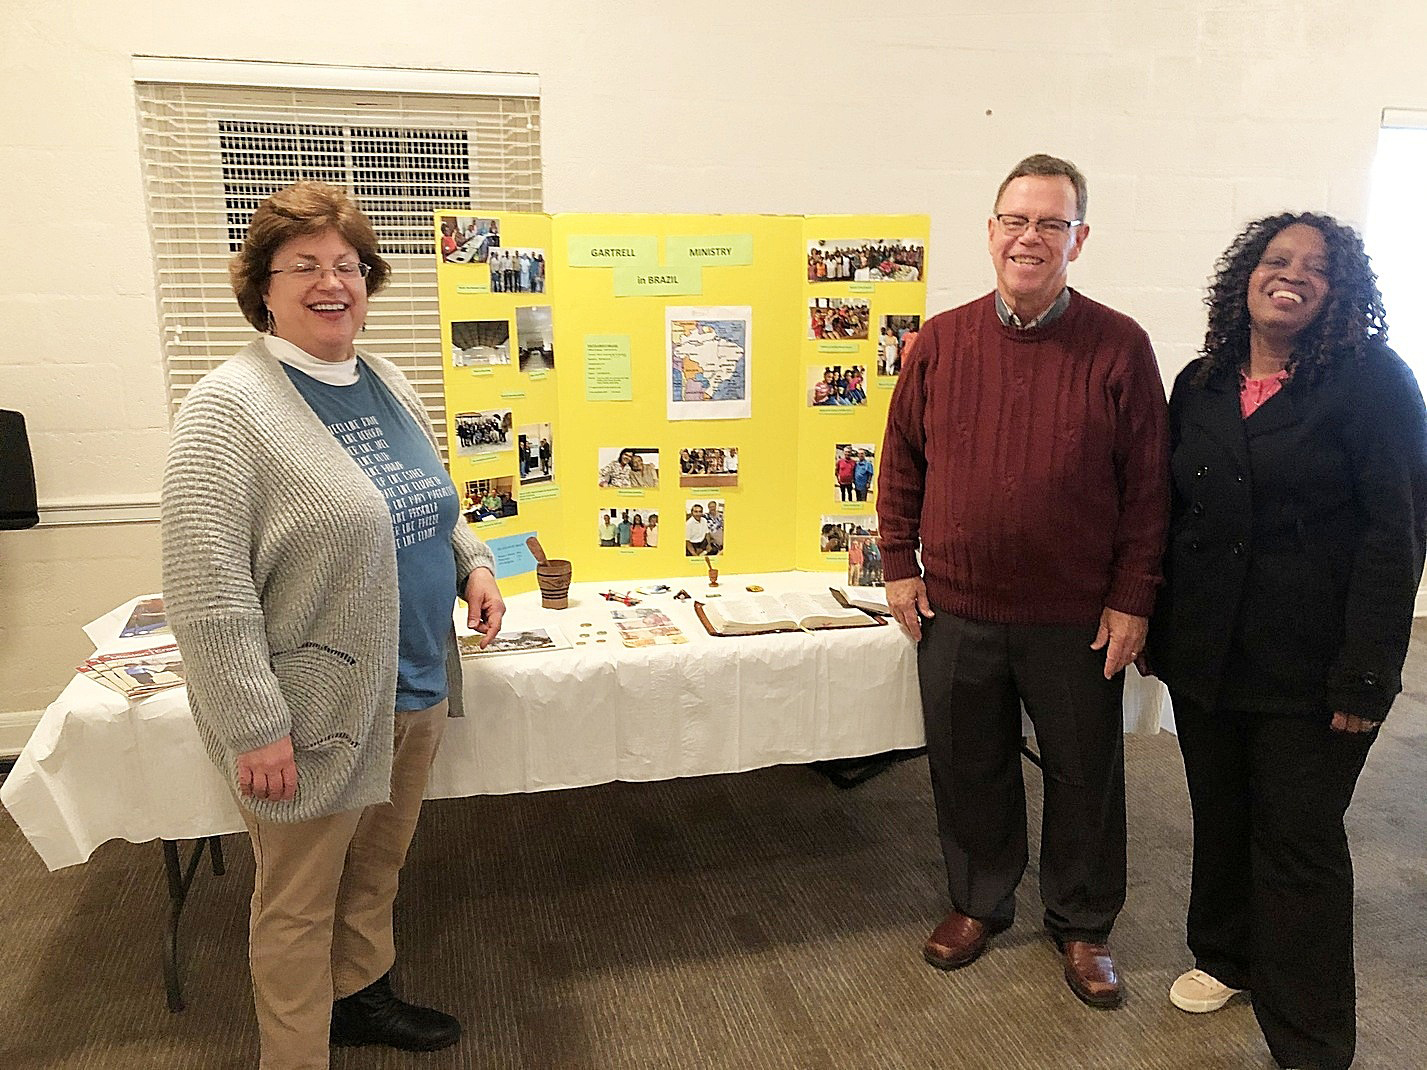 Sharing about our work at the Western Kentucky Presbytery meeting.